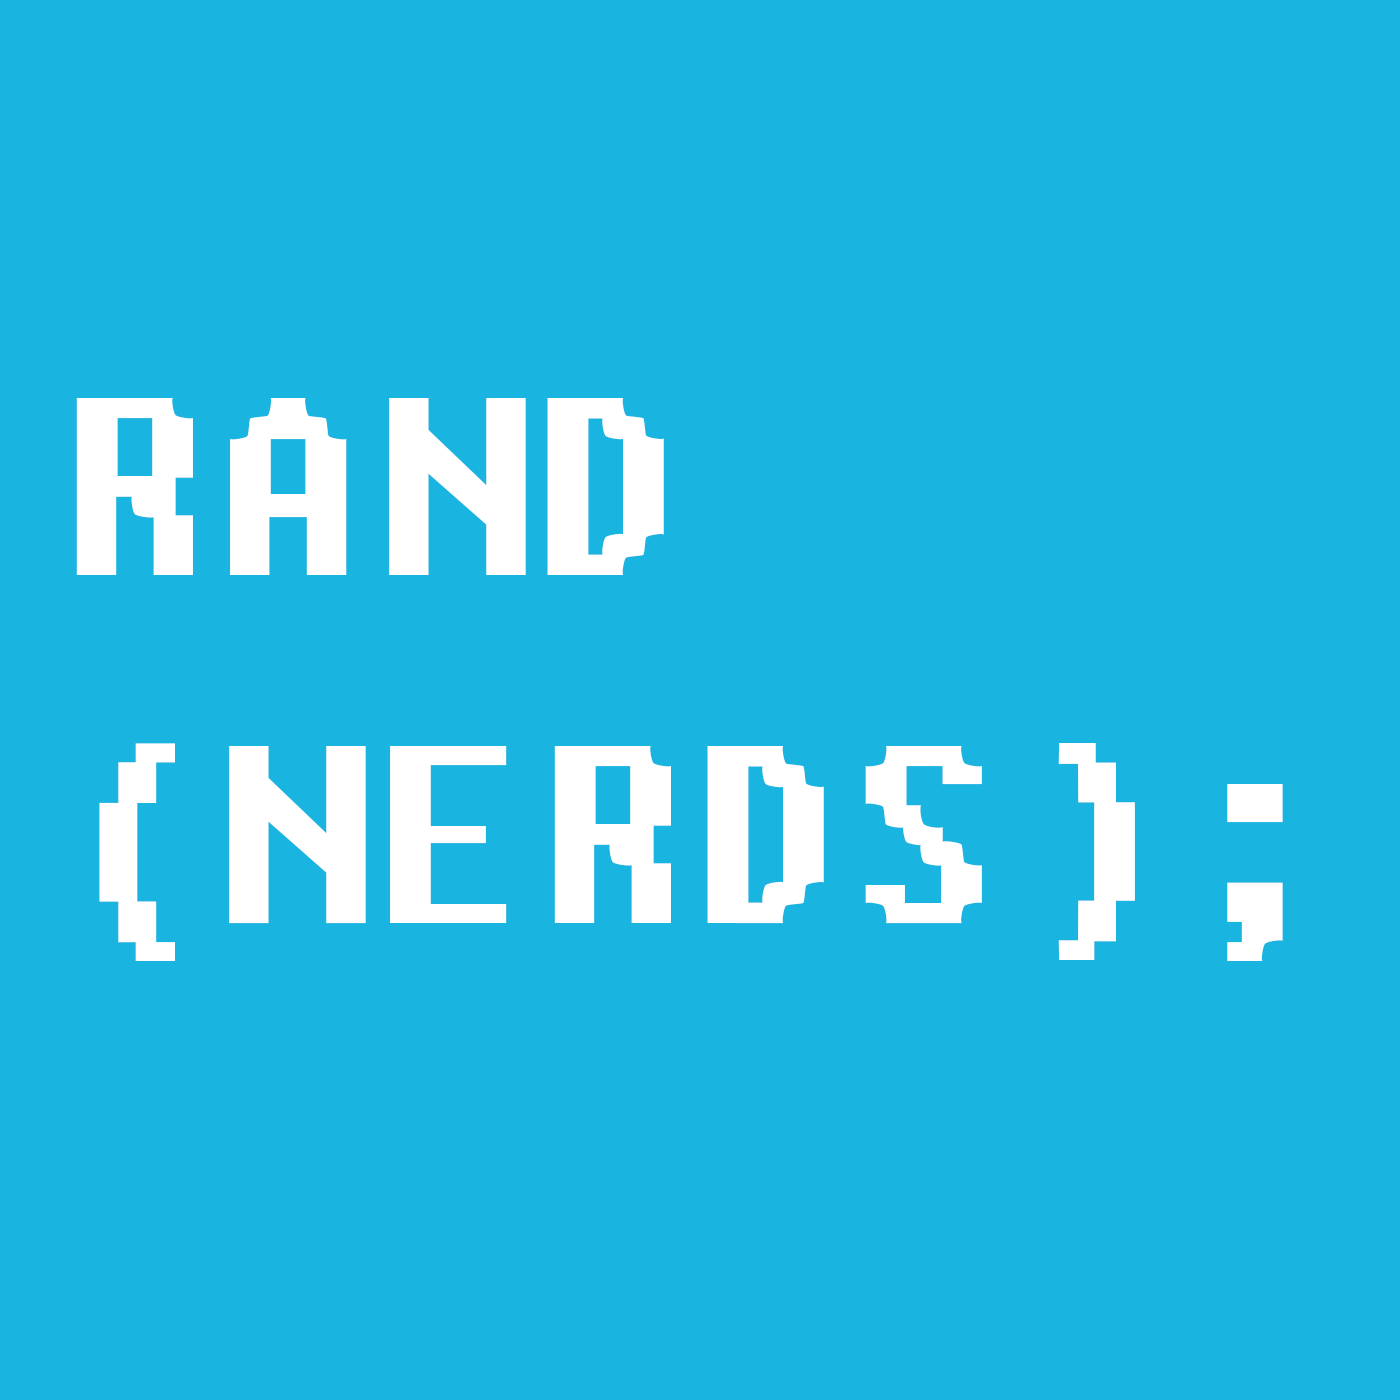 Rand(Nerds);